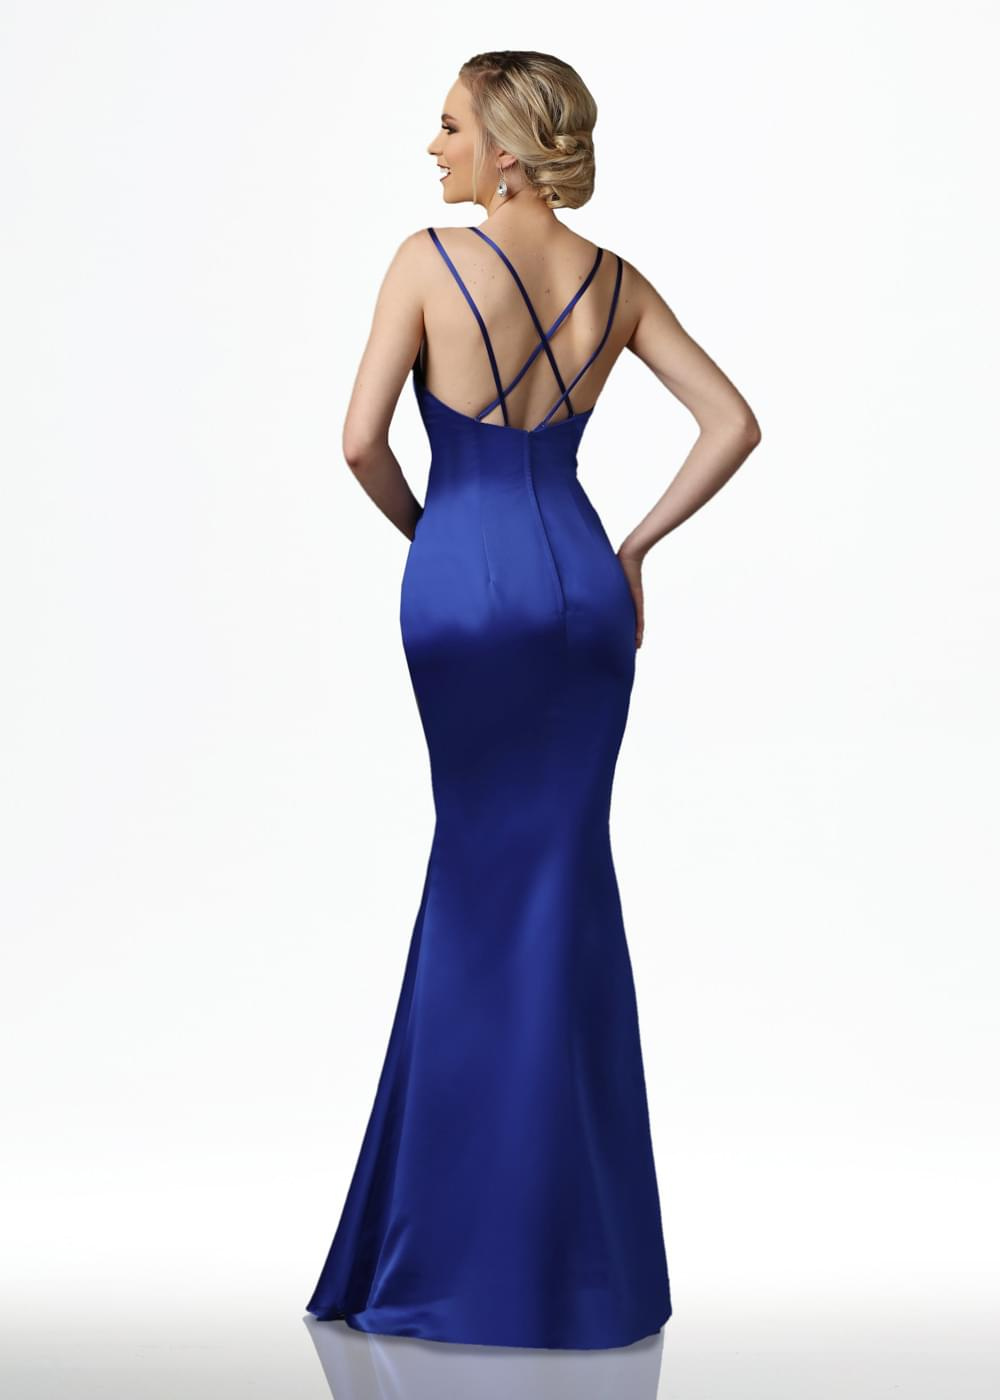 80124 Dresses with Straps By Ashdon